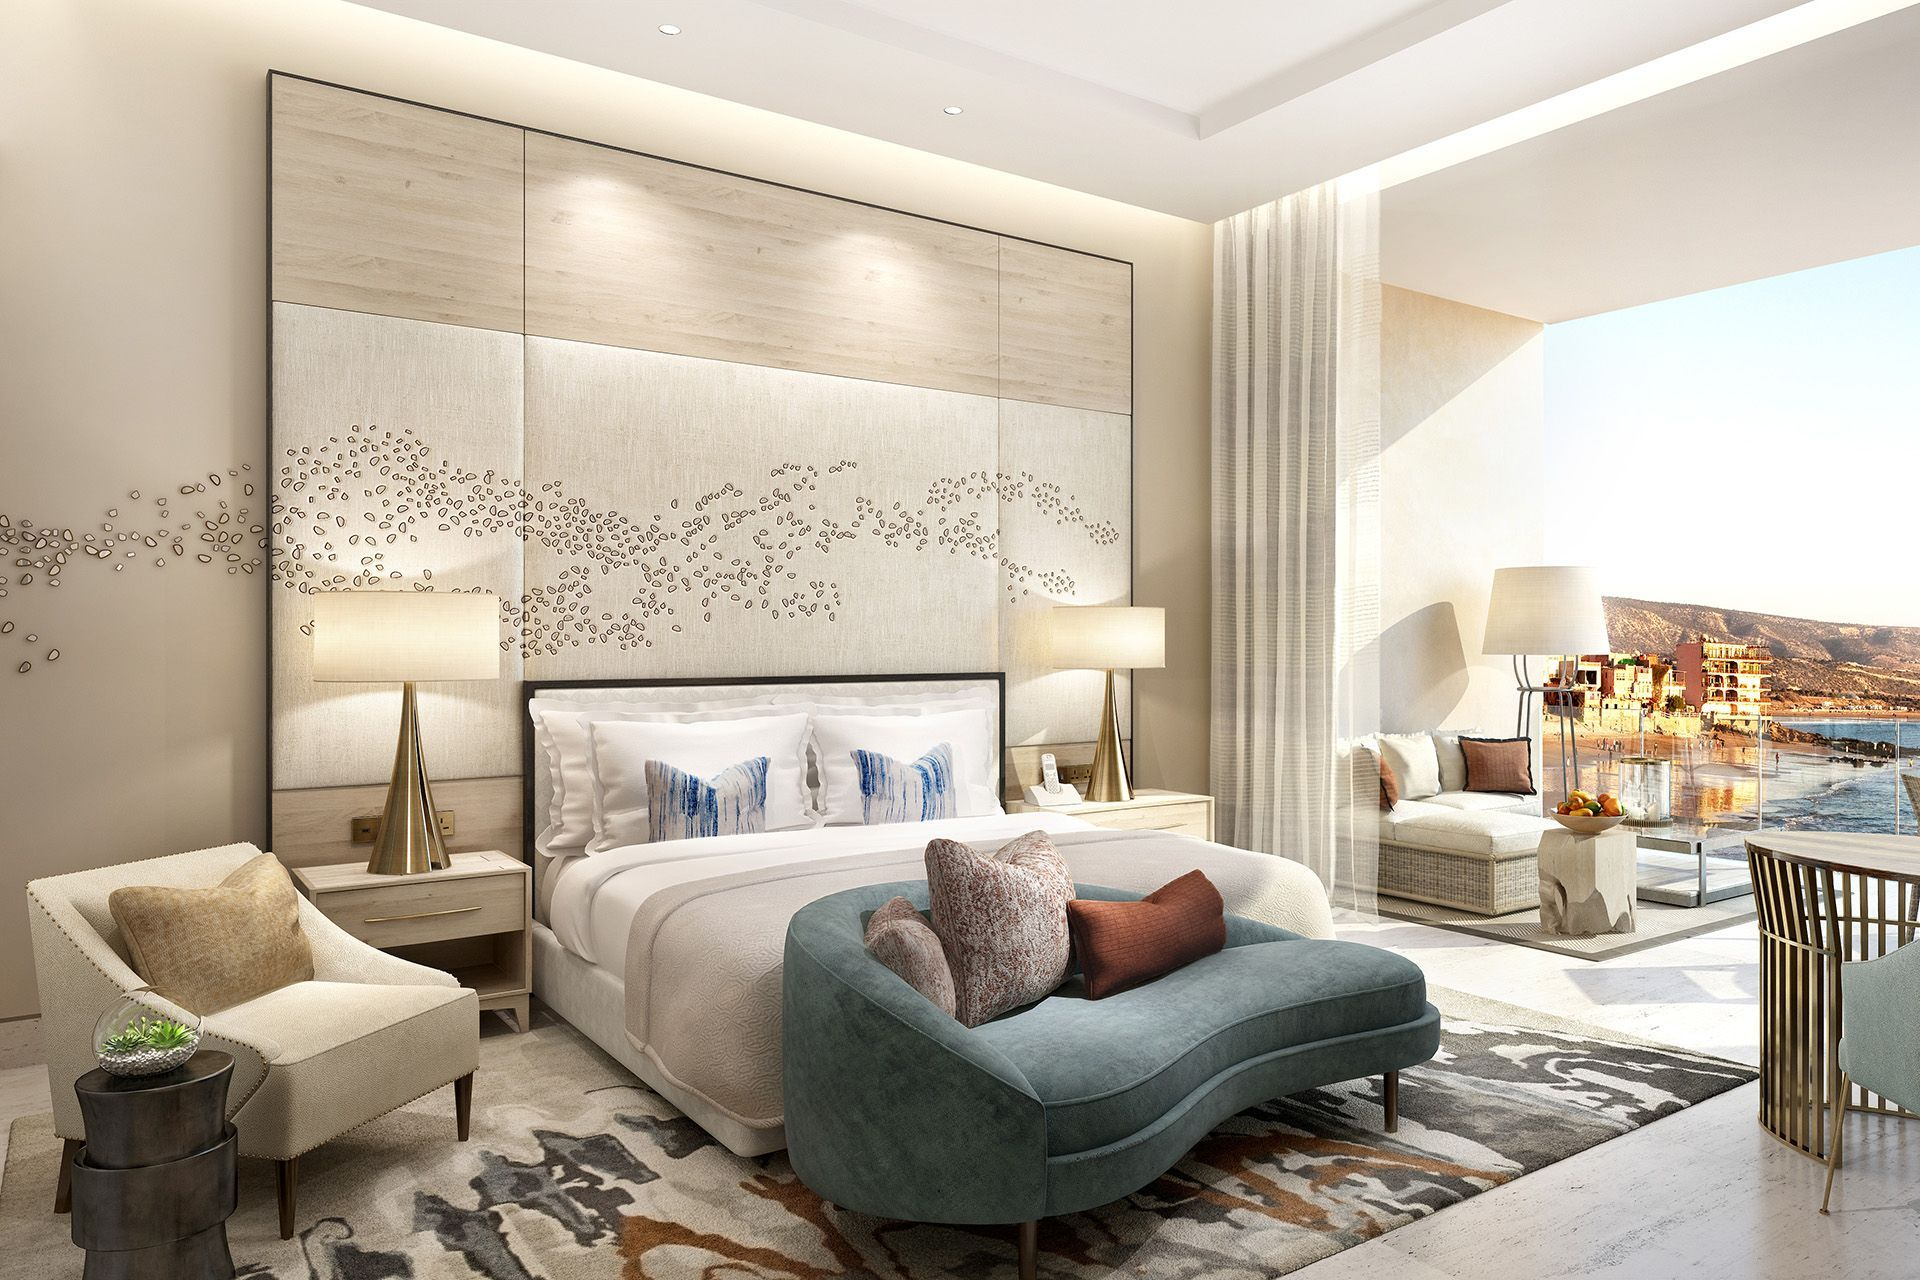 Four seasons taghazout interior designers wimberly for Modern bedroom interior